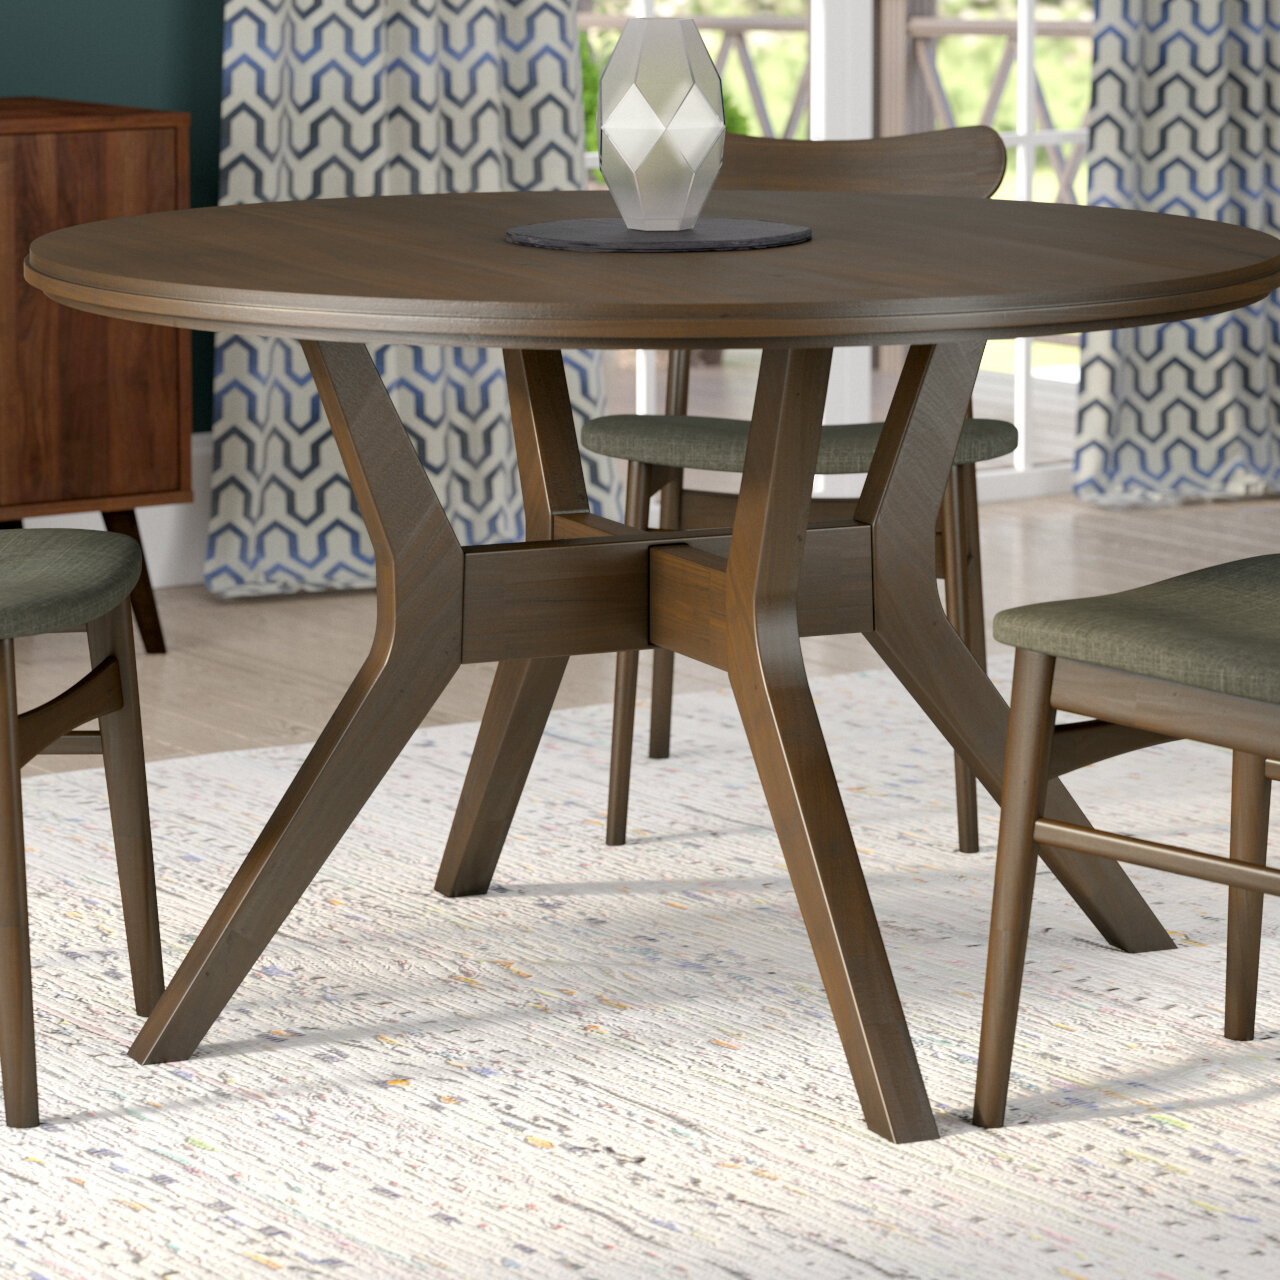 Pendergrass Round Dining Table